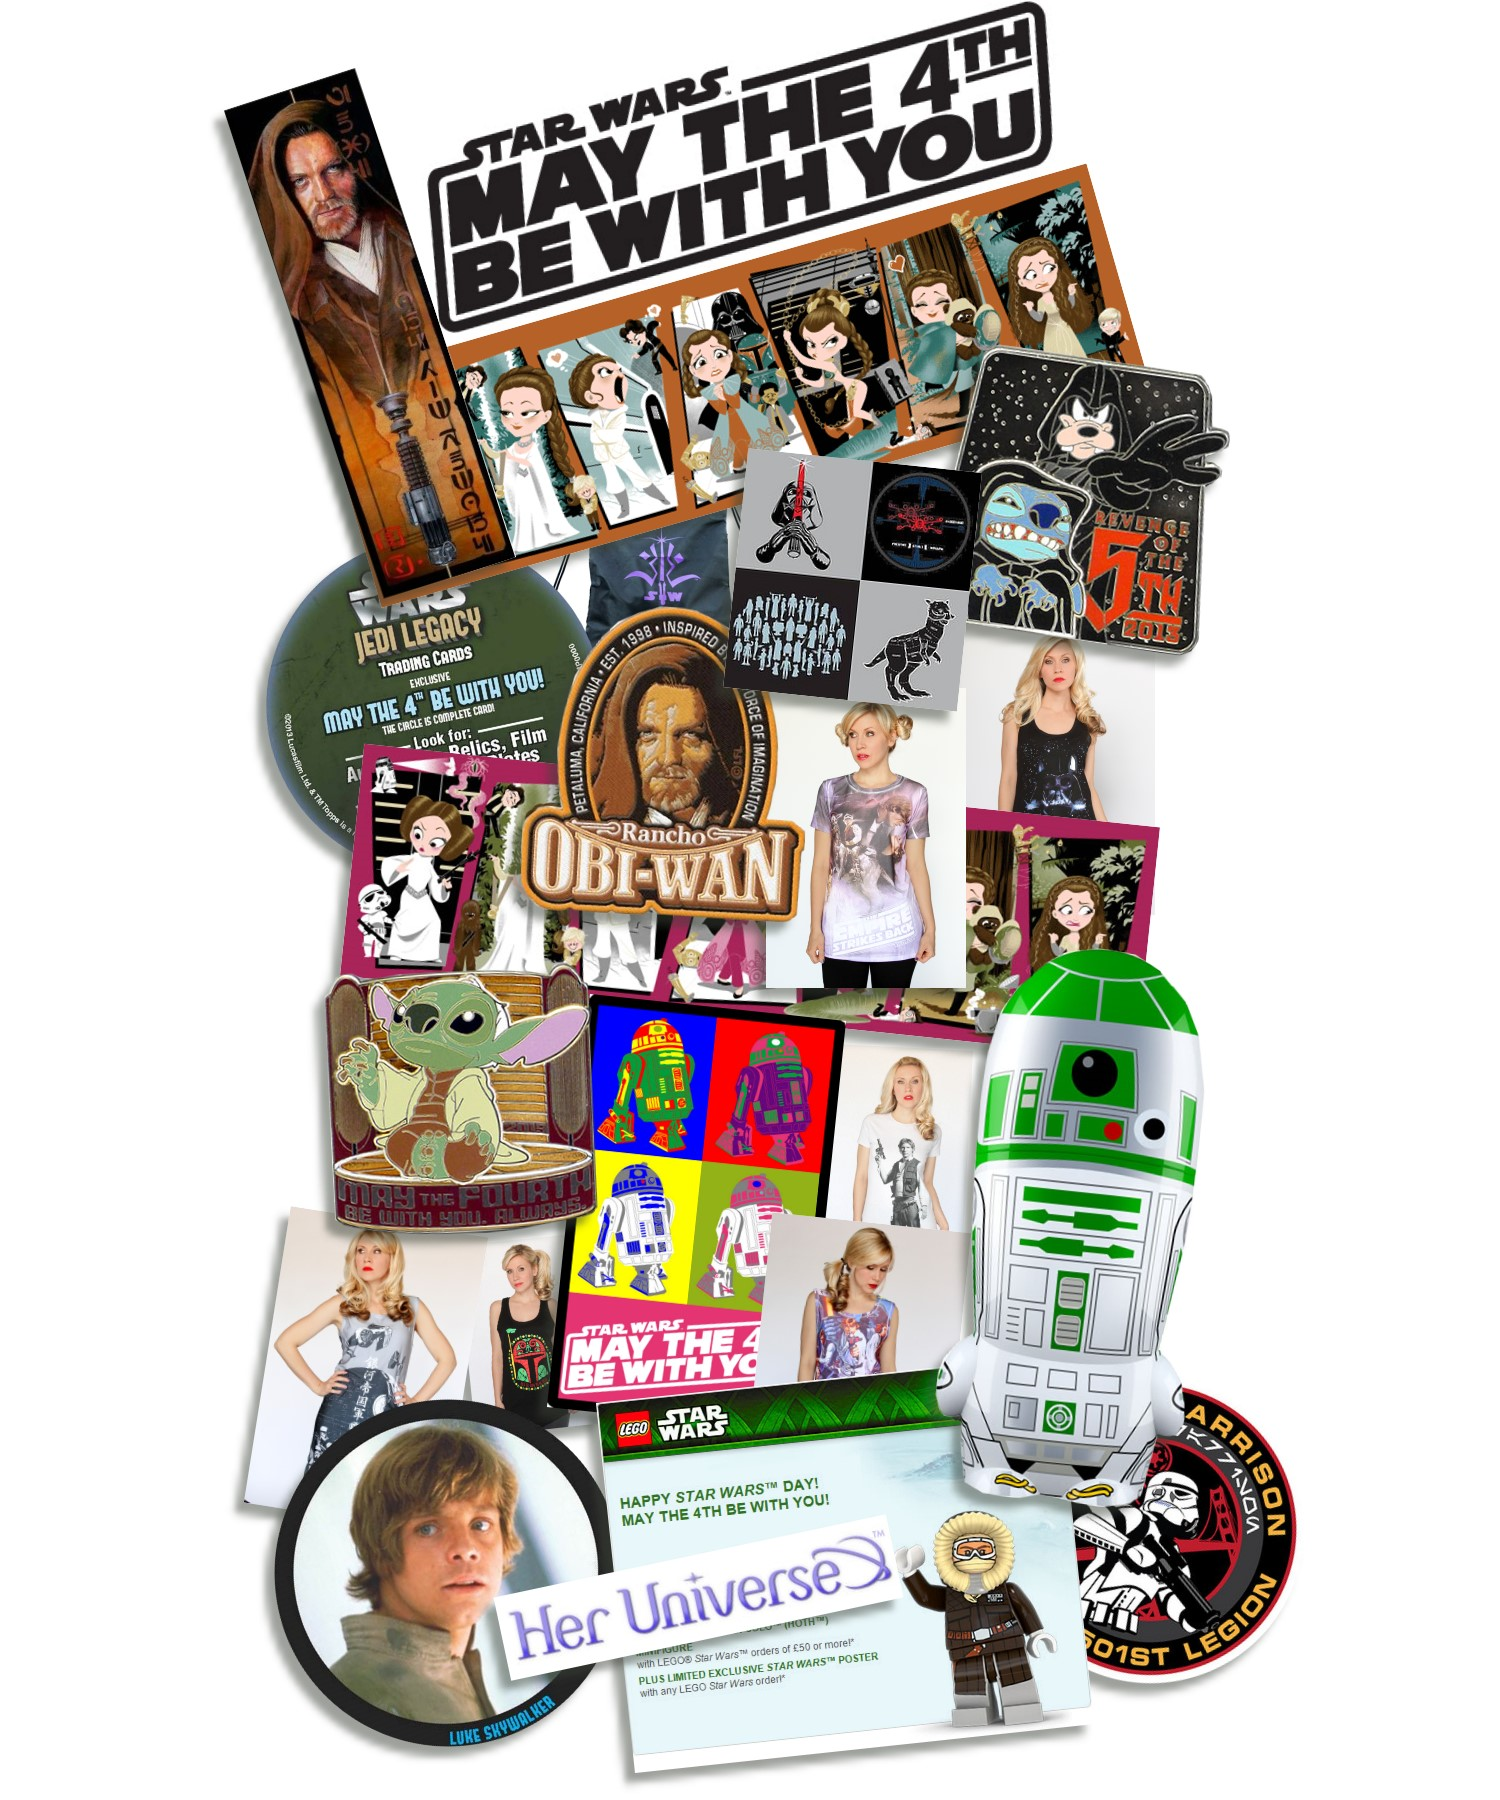 May The Fourth Be With You At Disneyland: May The 4th Be With You: Special Product Releases And